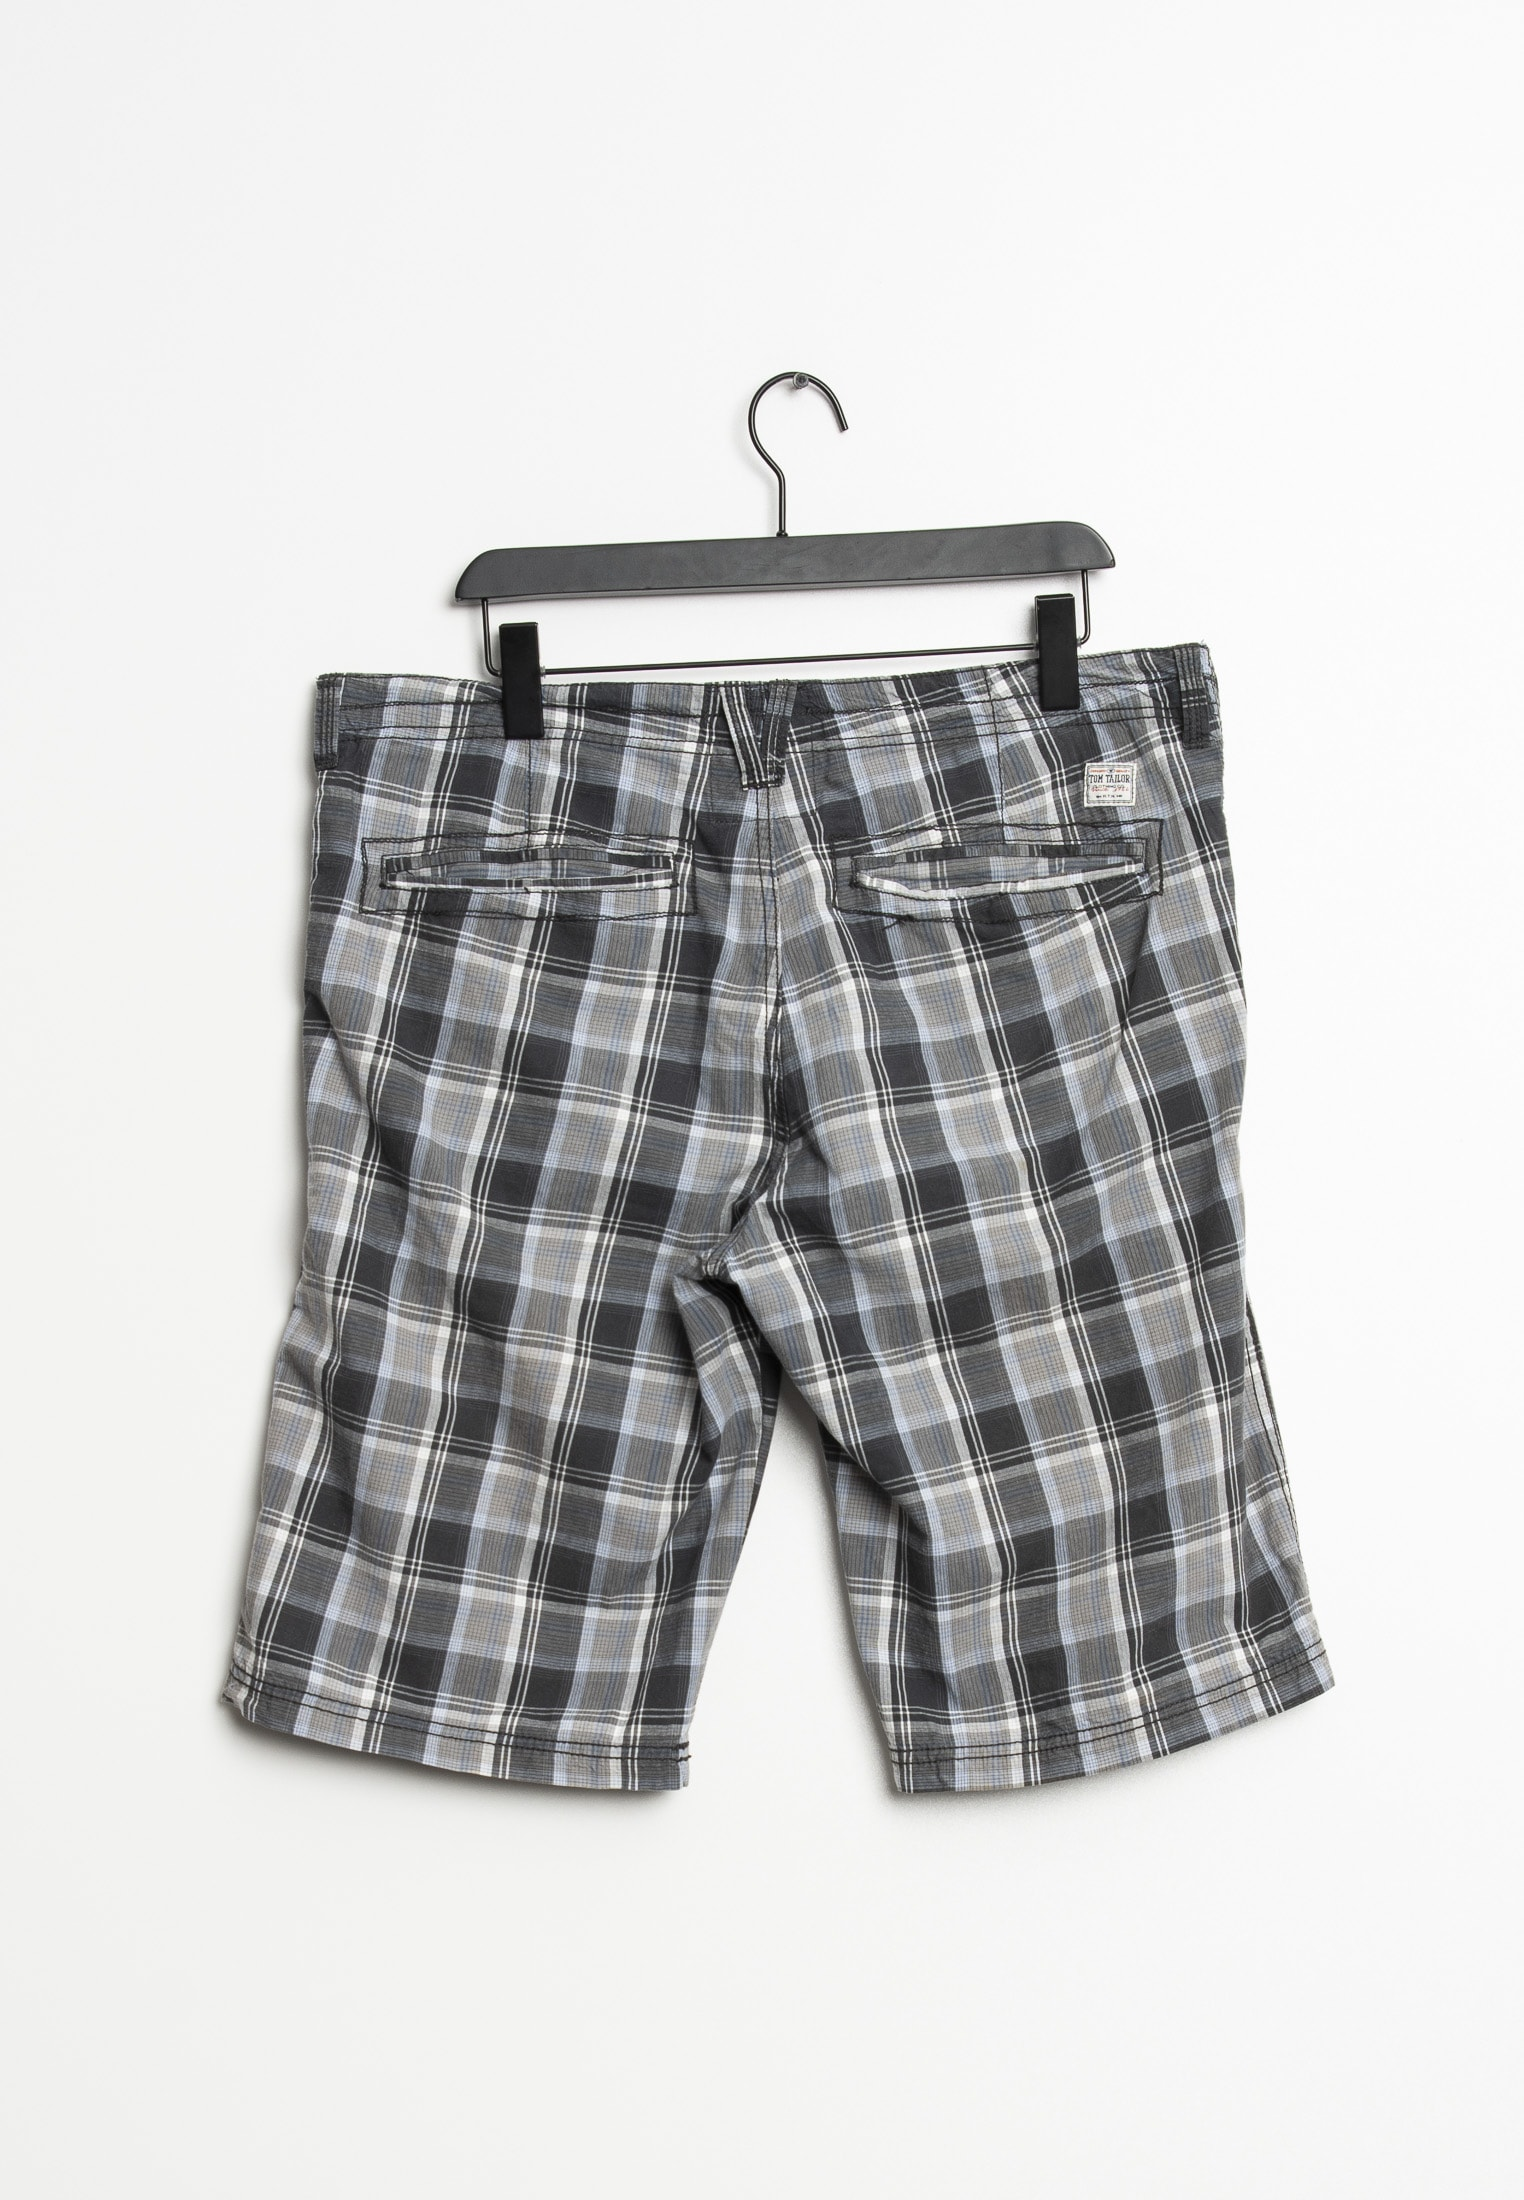 TOM TAILOR Shorts Grau Gr.36